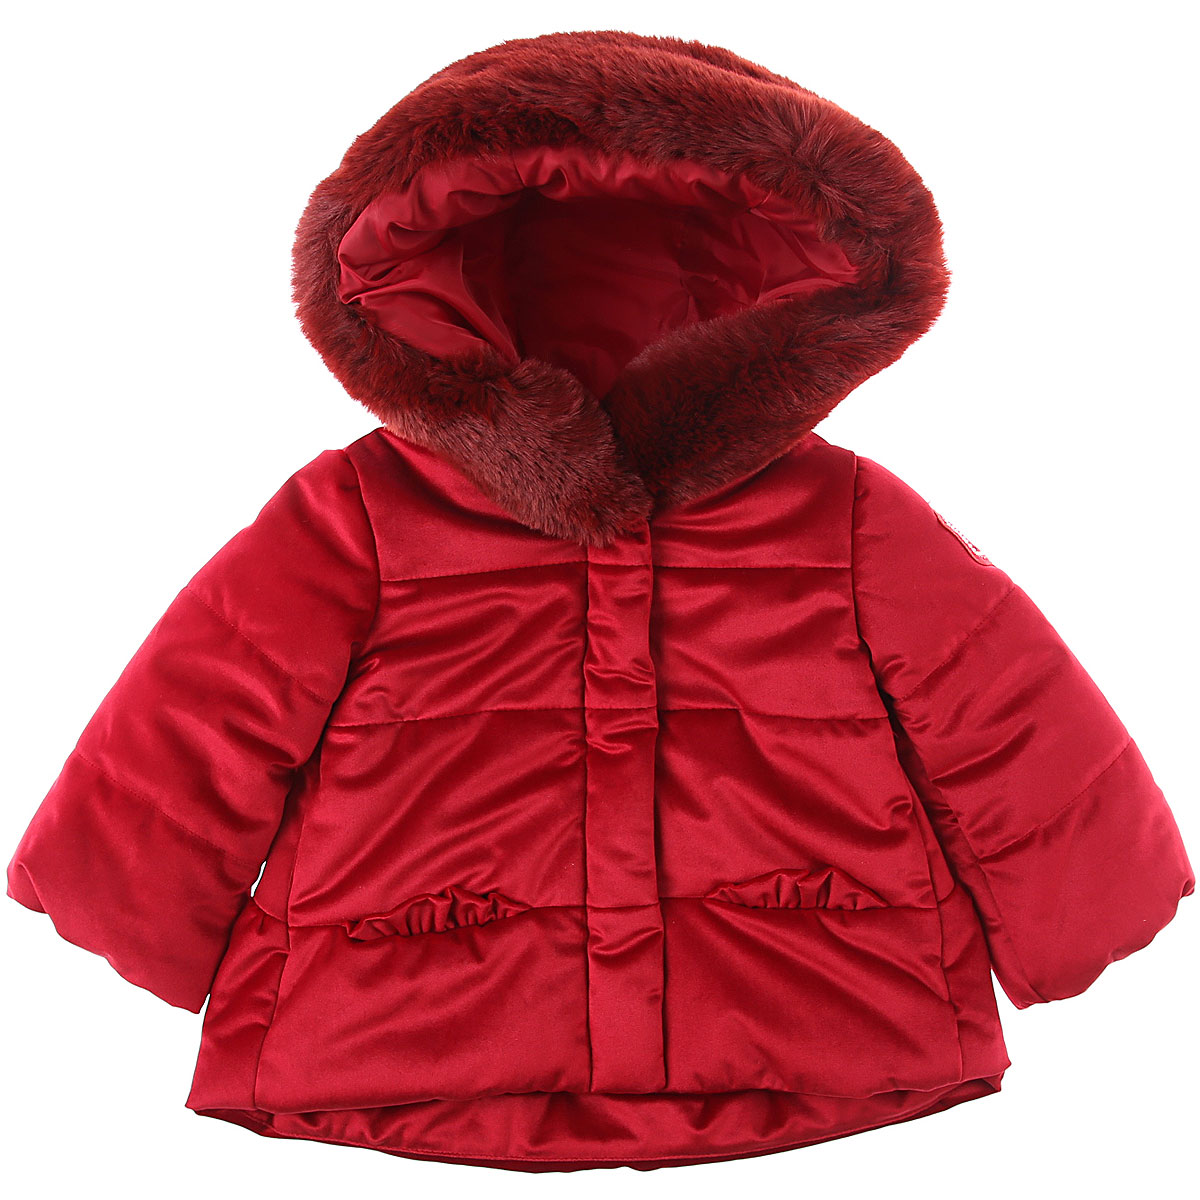 Monnalisa Baby Down Jacket for Girls On Sale, Ruby Red, polyester, 2019, 12M 18M 6M 9M